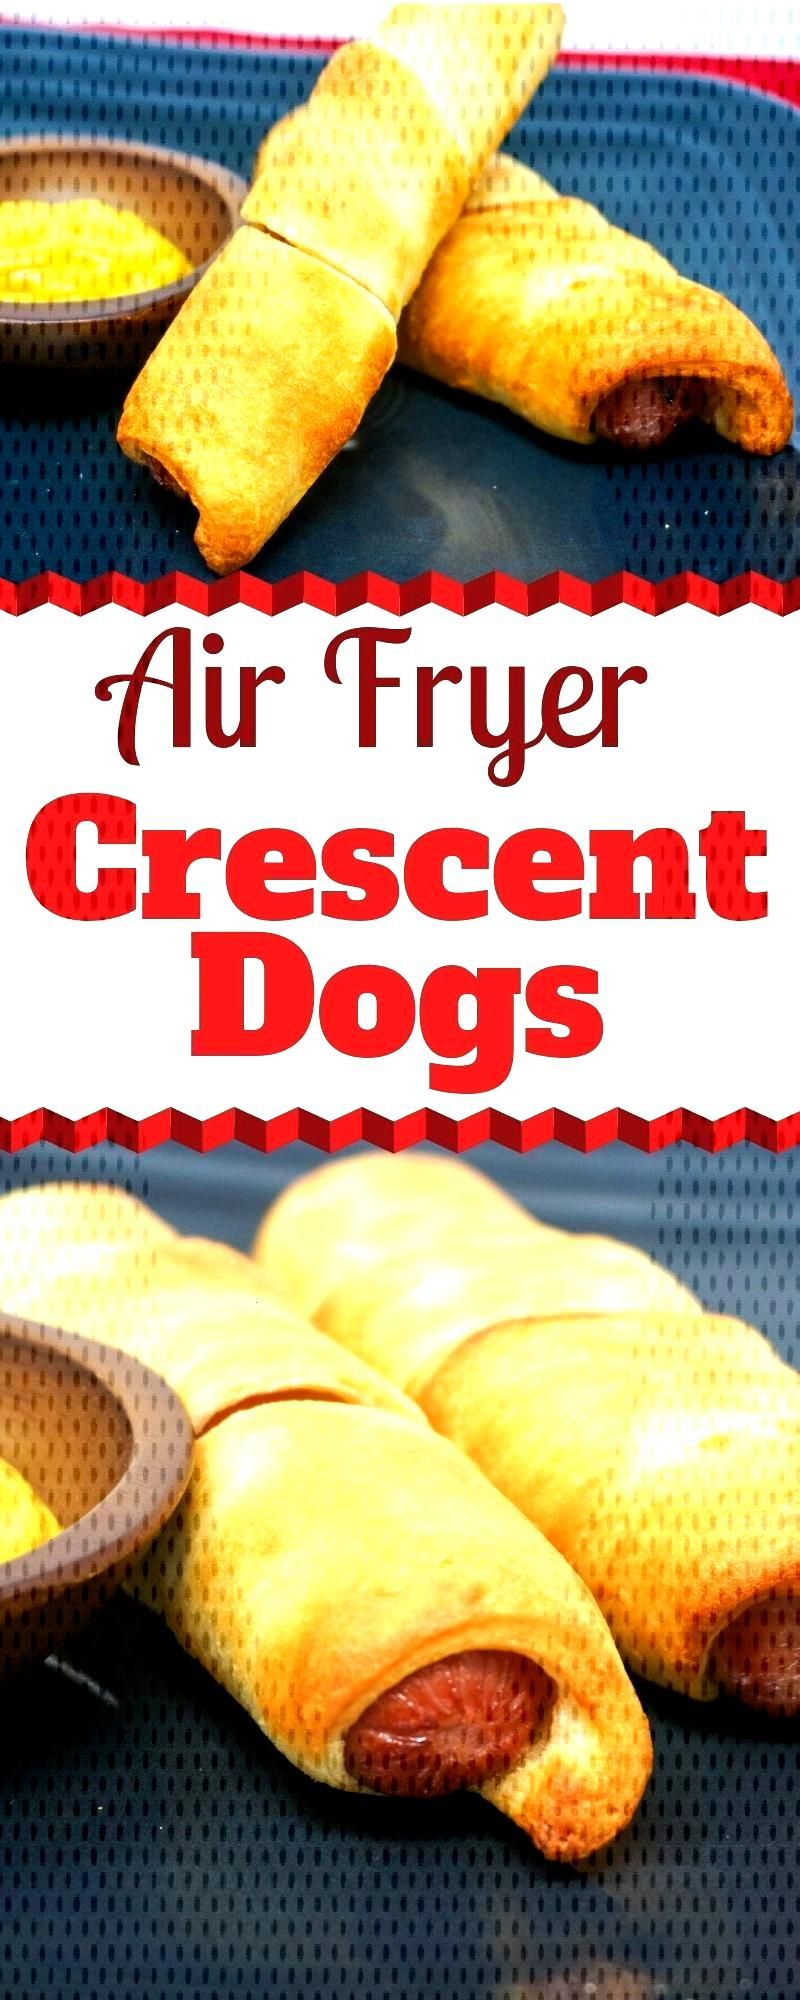 Air Fryer Crescent Dogs are a fun little snack or quick meal that are a detour from your normal Hot